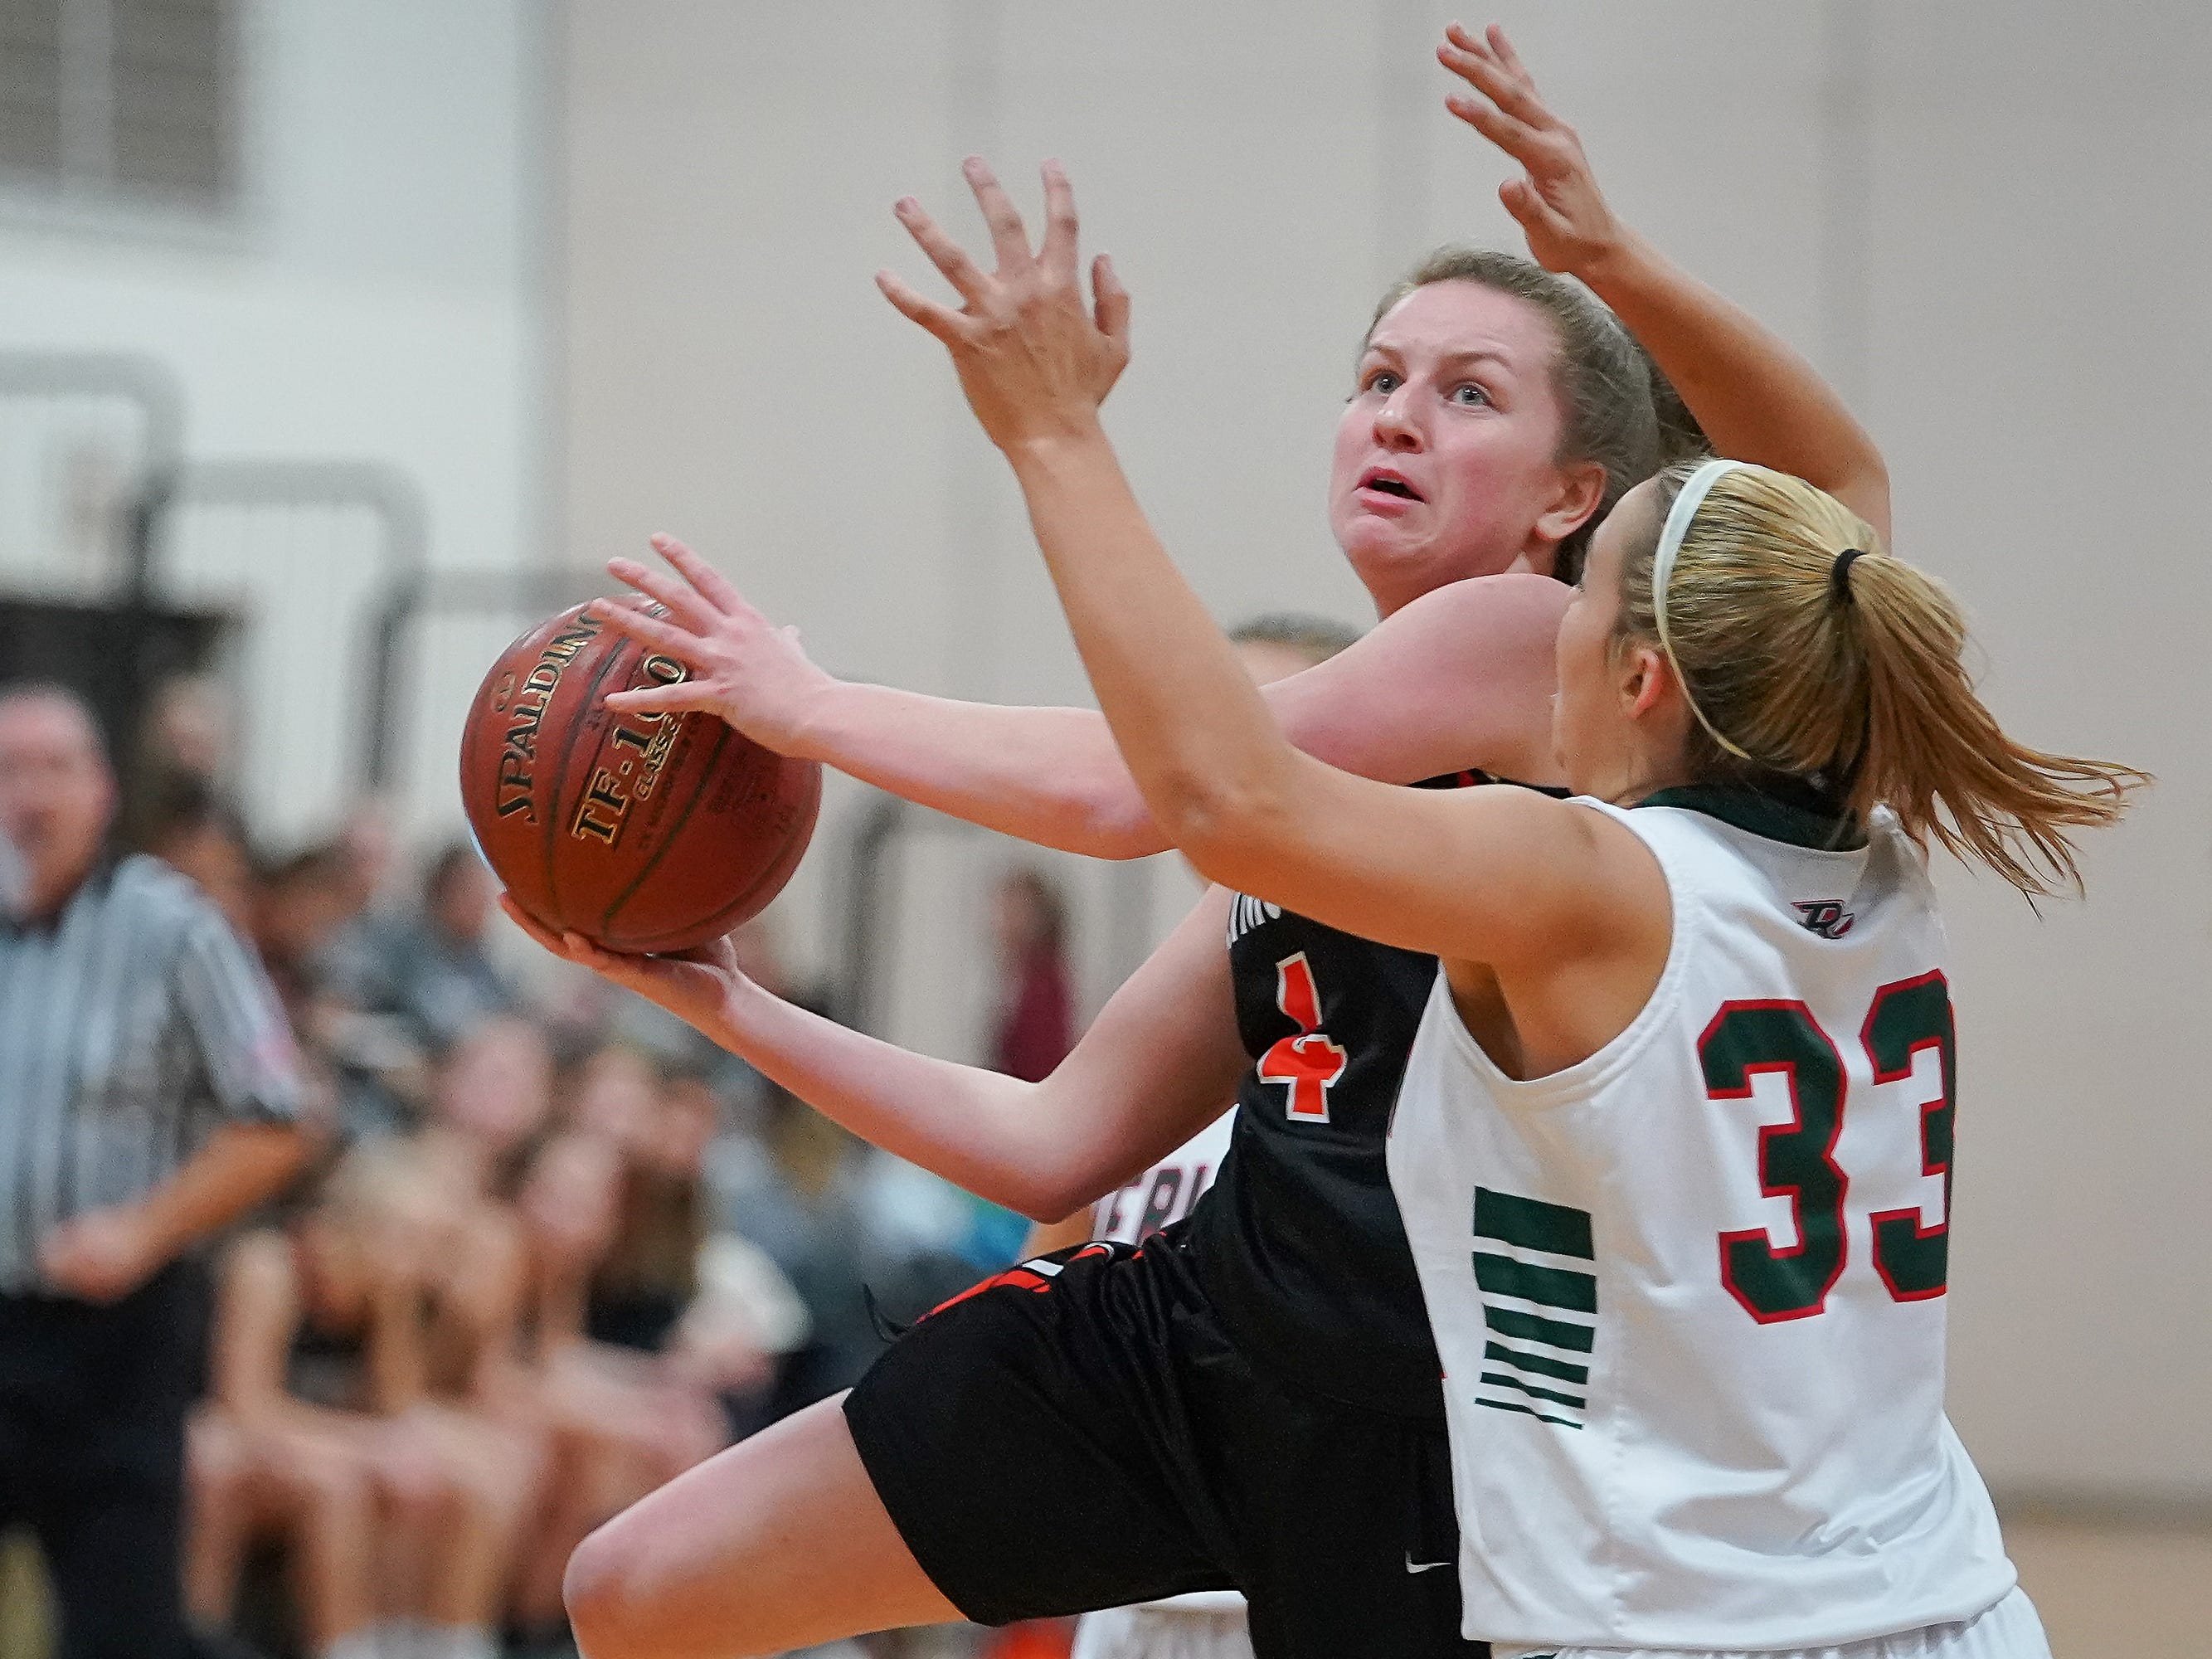 Alesha Kaat-Fohr (4) of Plymouth drives past Madalyn Naparalla (33) of Berlin. The Berlin Indians hosted the Plymouth Panthers in an East Central Conference basketball game Thursday evening, December 13, 2018.